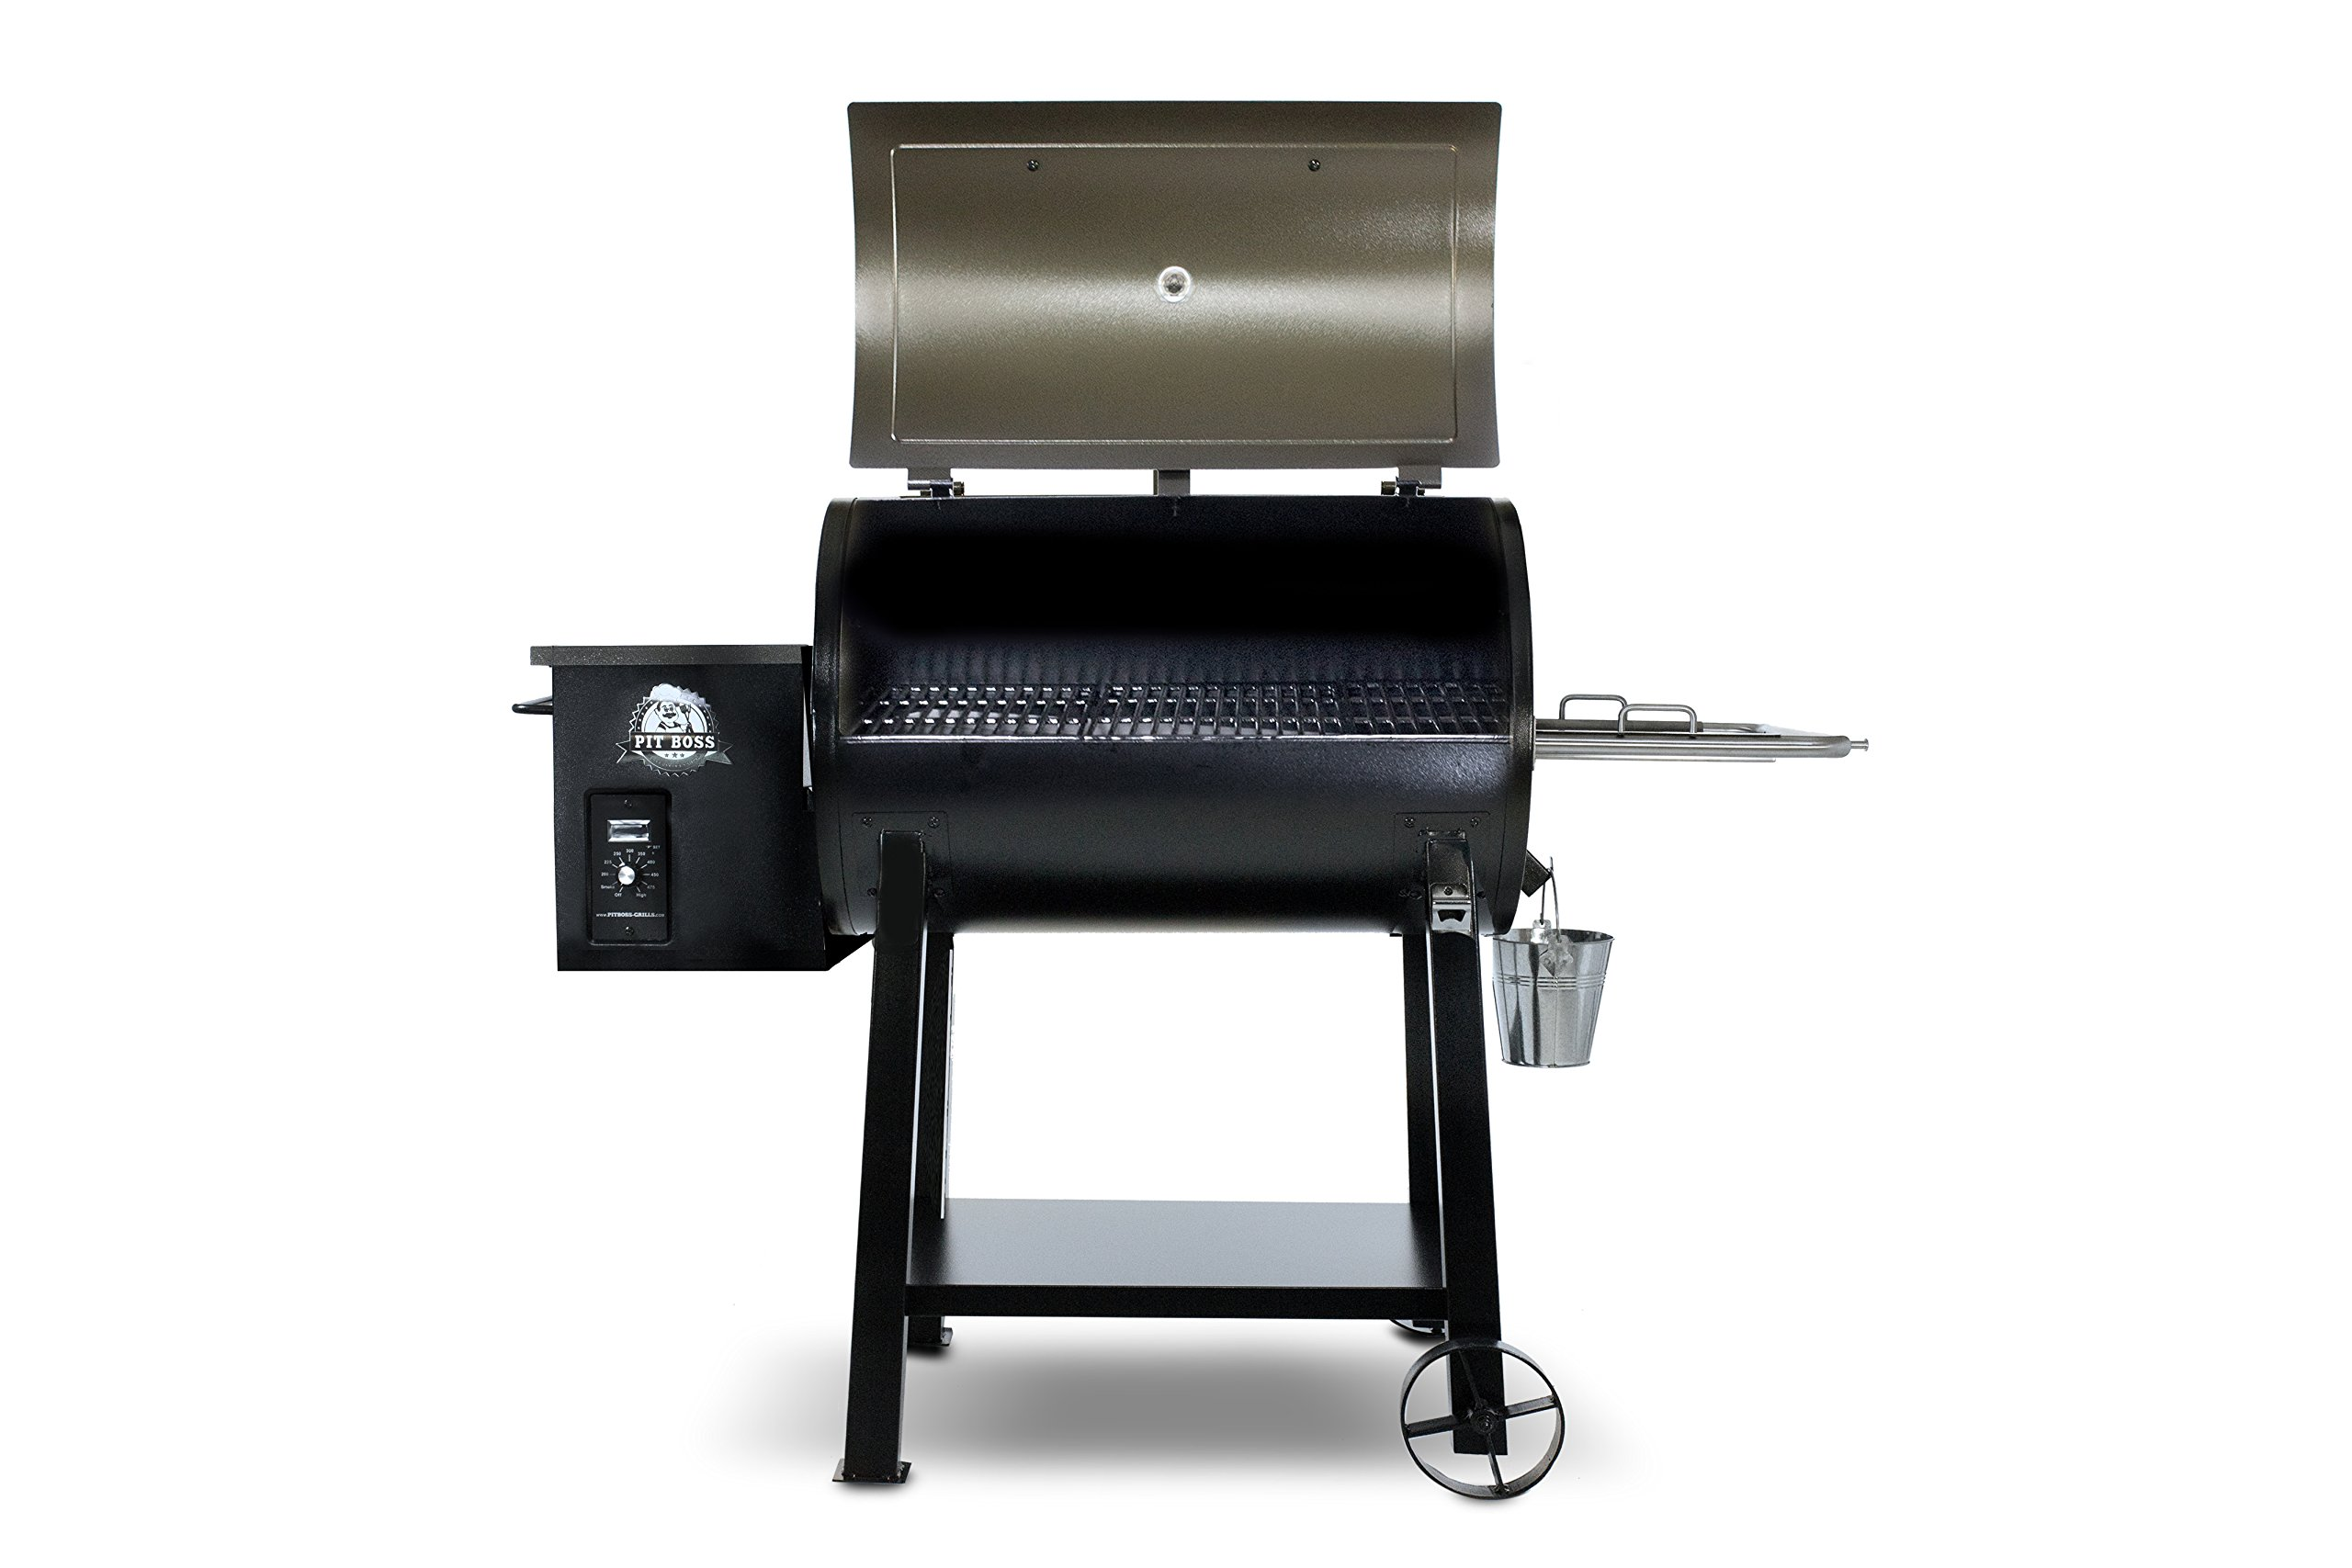 Pit Boss Grills 440 Deluxe Wood Pellet Grill by Pit Boss Grills (Image #2)